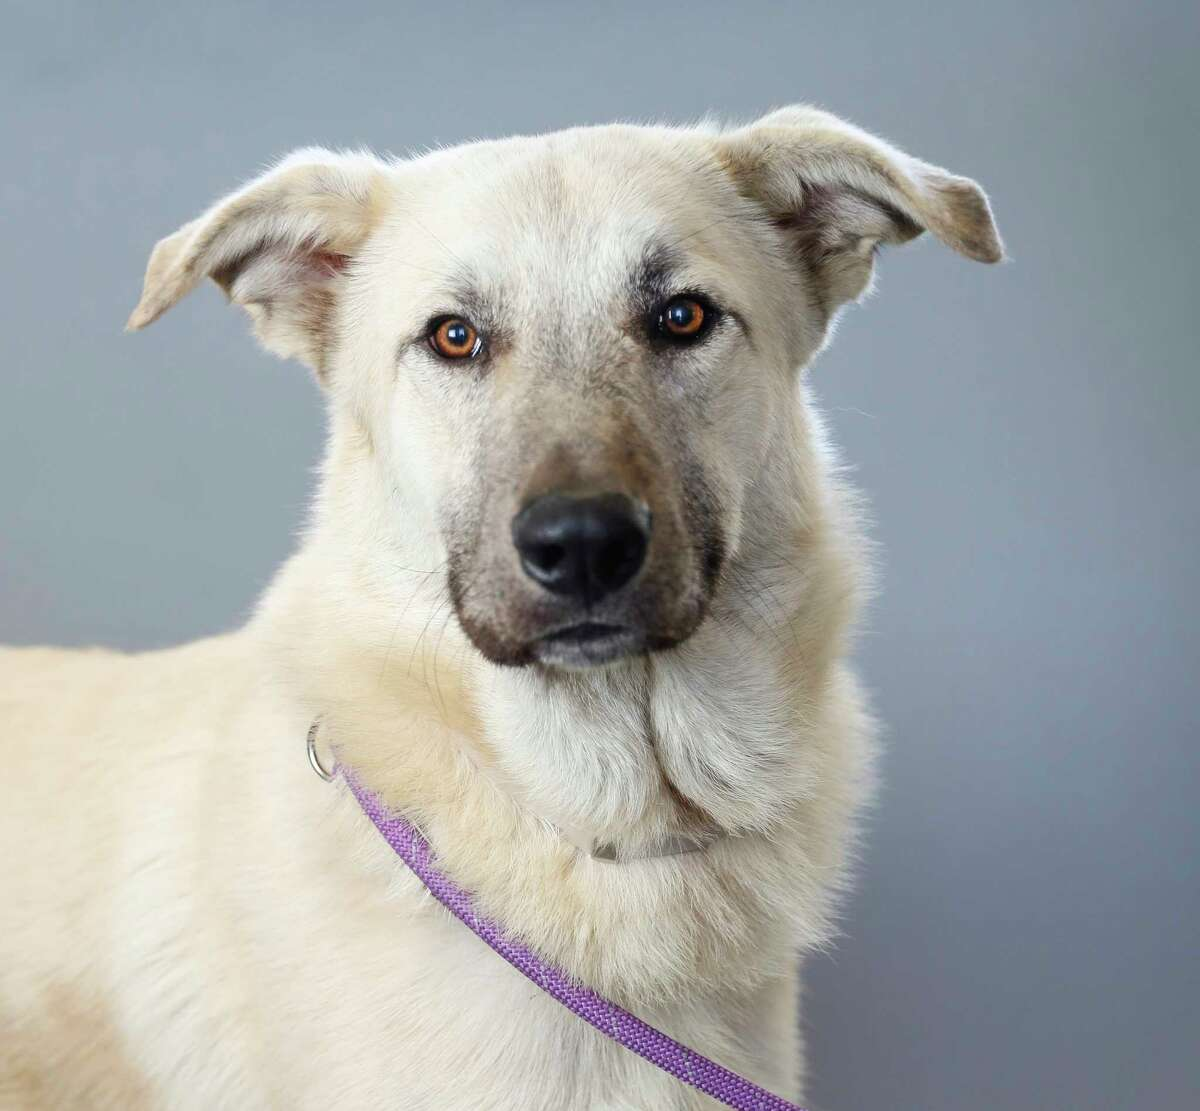 Zeus (A1674307) is a 1-year-old, male, Anatol Shepherd mix available for adoption from the BARC Animal Shelter, in Houston, Tuesday, Jan. 21, 2020. Zeus is a big boy, who thinks he's a tiny puppy. Full of energy and handsome!